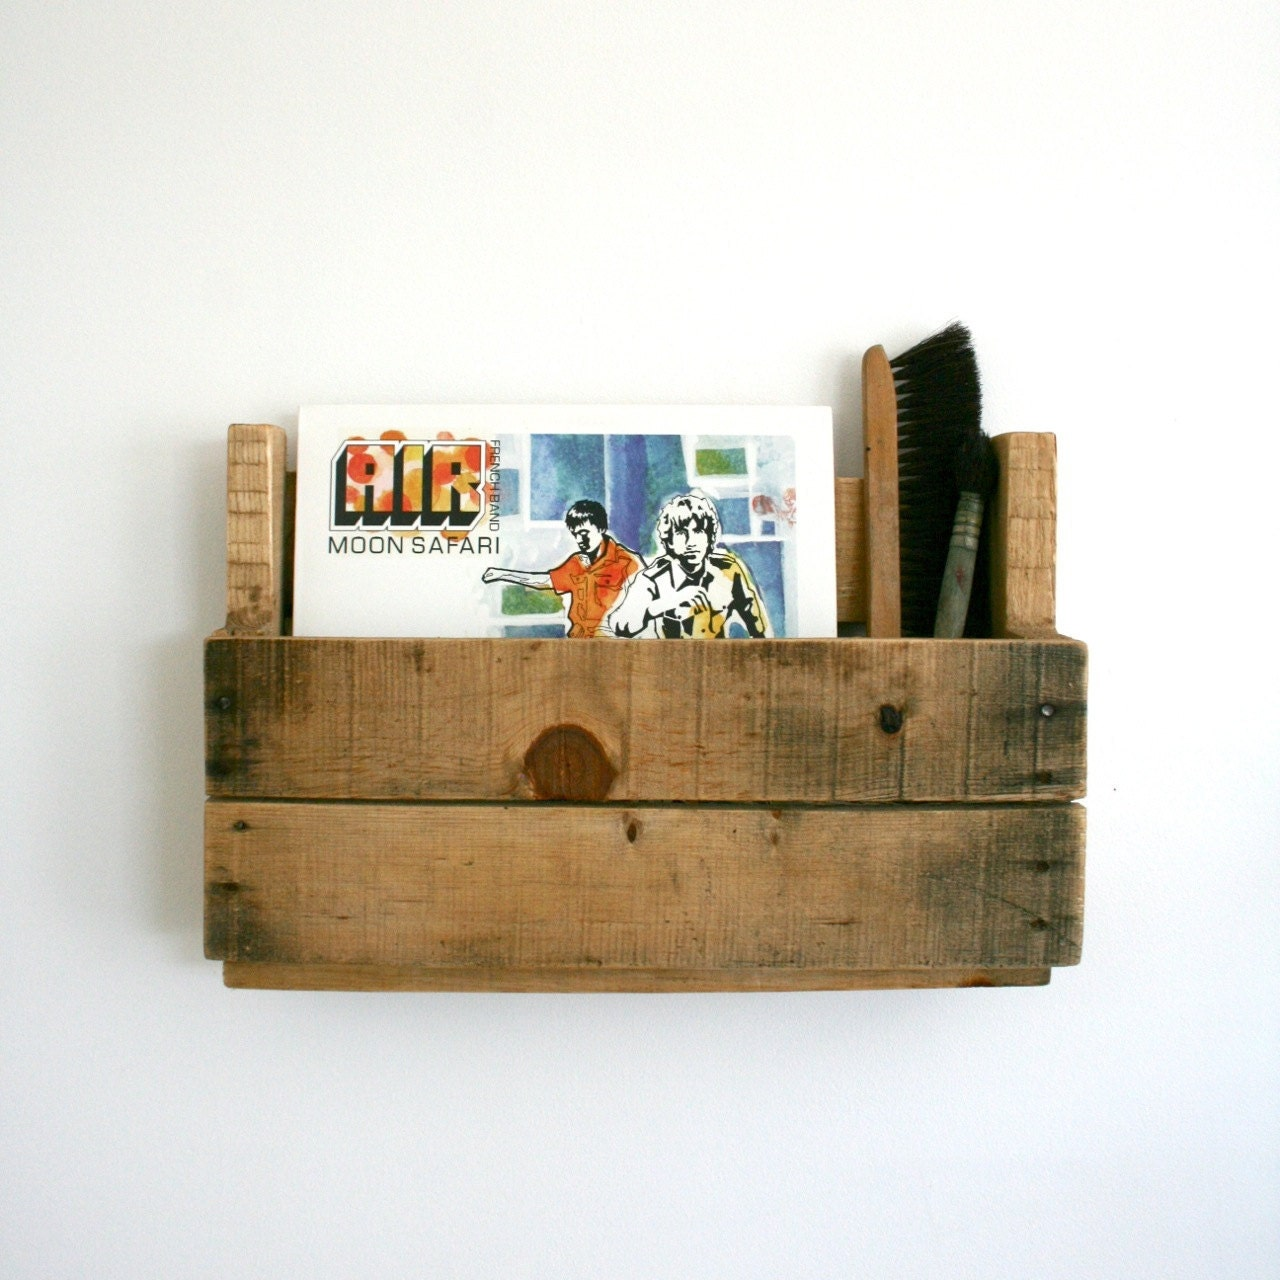 Wall Mount Recycled Wood Pallet Shelf For Vinyl Record Or